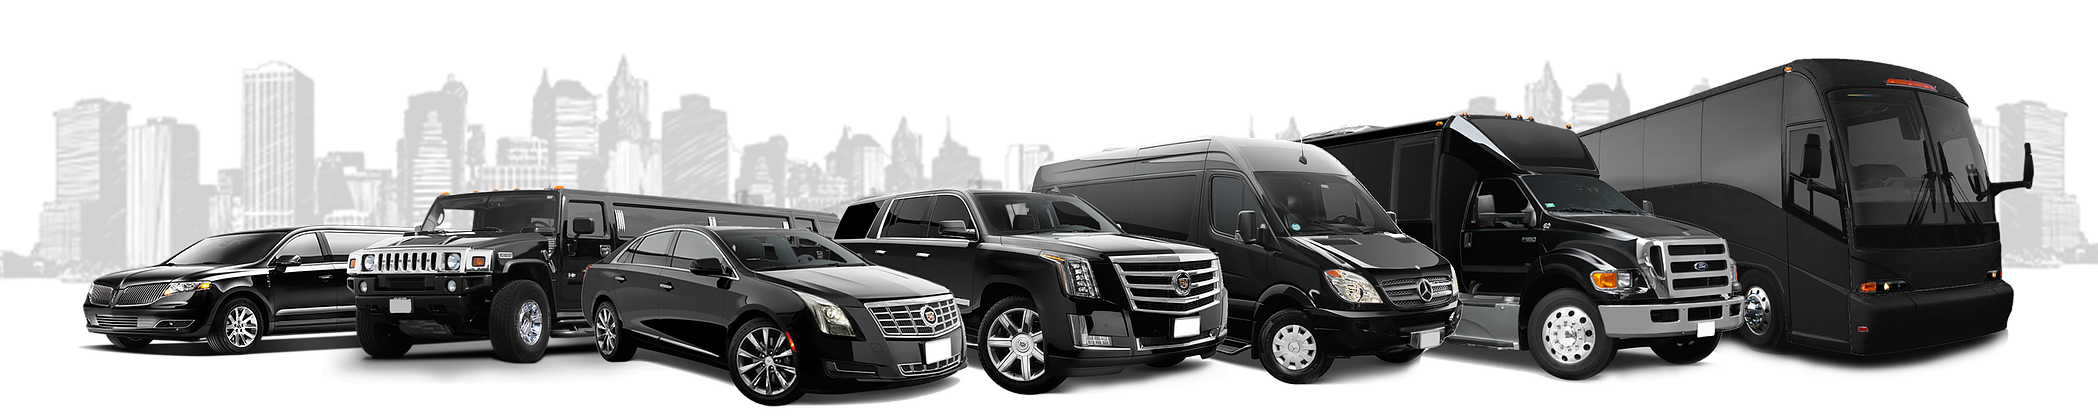 fleet available at sigma limo